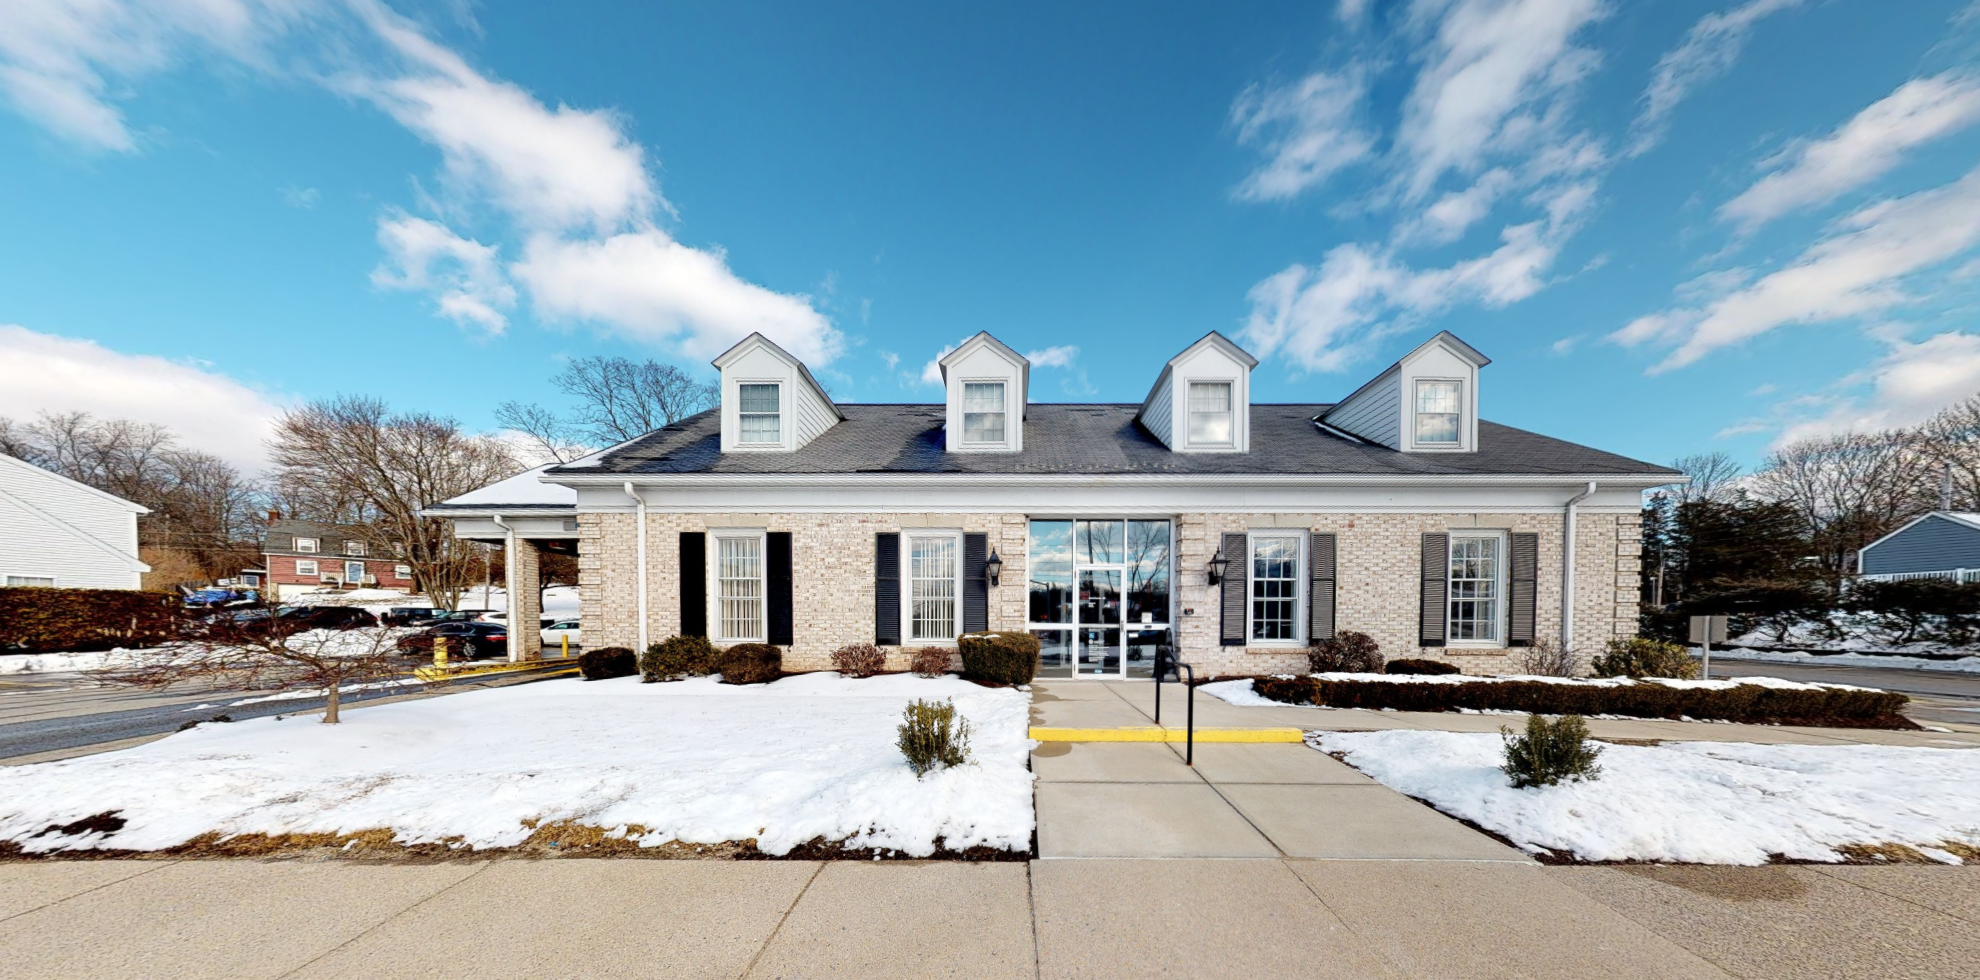 Bank of America financial center with drive-thru ATM | 1975 Mendon Rd, Cumberland, RI 02864